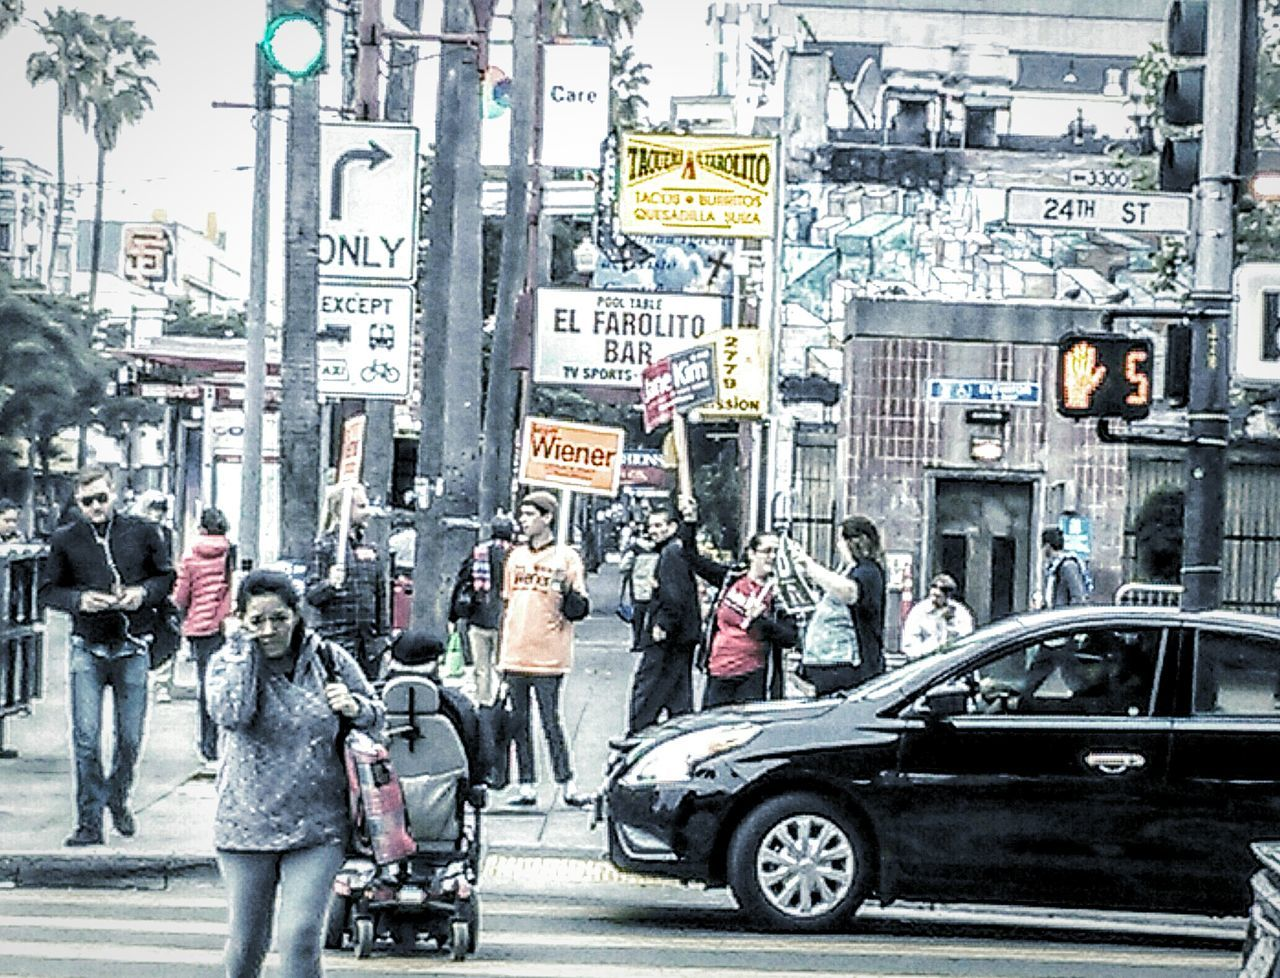 My Commute 24th Street  San Francisco Ca San Francisco CA🇺🇸 Election Day Election Campaign Campaign Volunteers Campaign Poster Primary Election Day Cross Walk Street Photography Morning Day Commute Public Transportation Bart Station Pedestrians Walking Campaign Signs Architecture Traffic Signal Traffic Lights Street Sign Pedestrian Crossing Commuters Black And White With A Splash Of Colour Black And White Street Photography